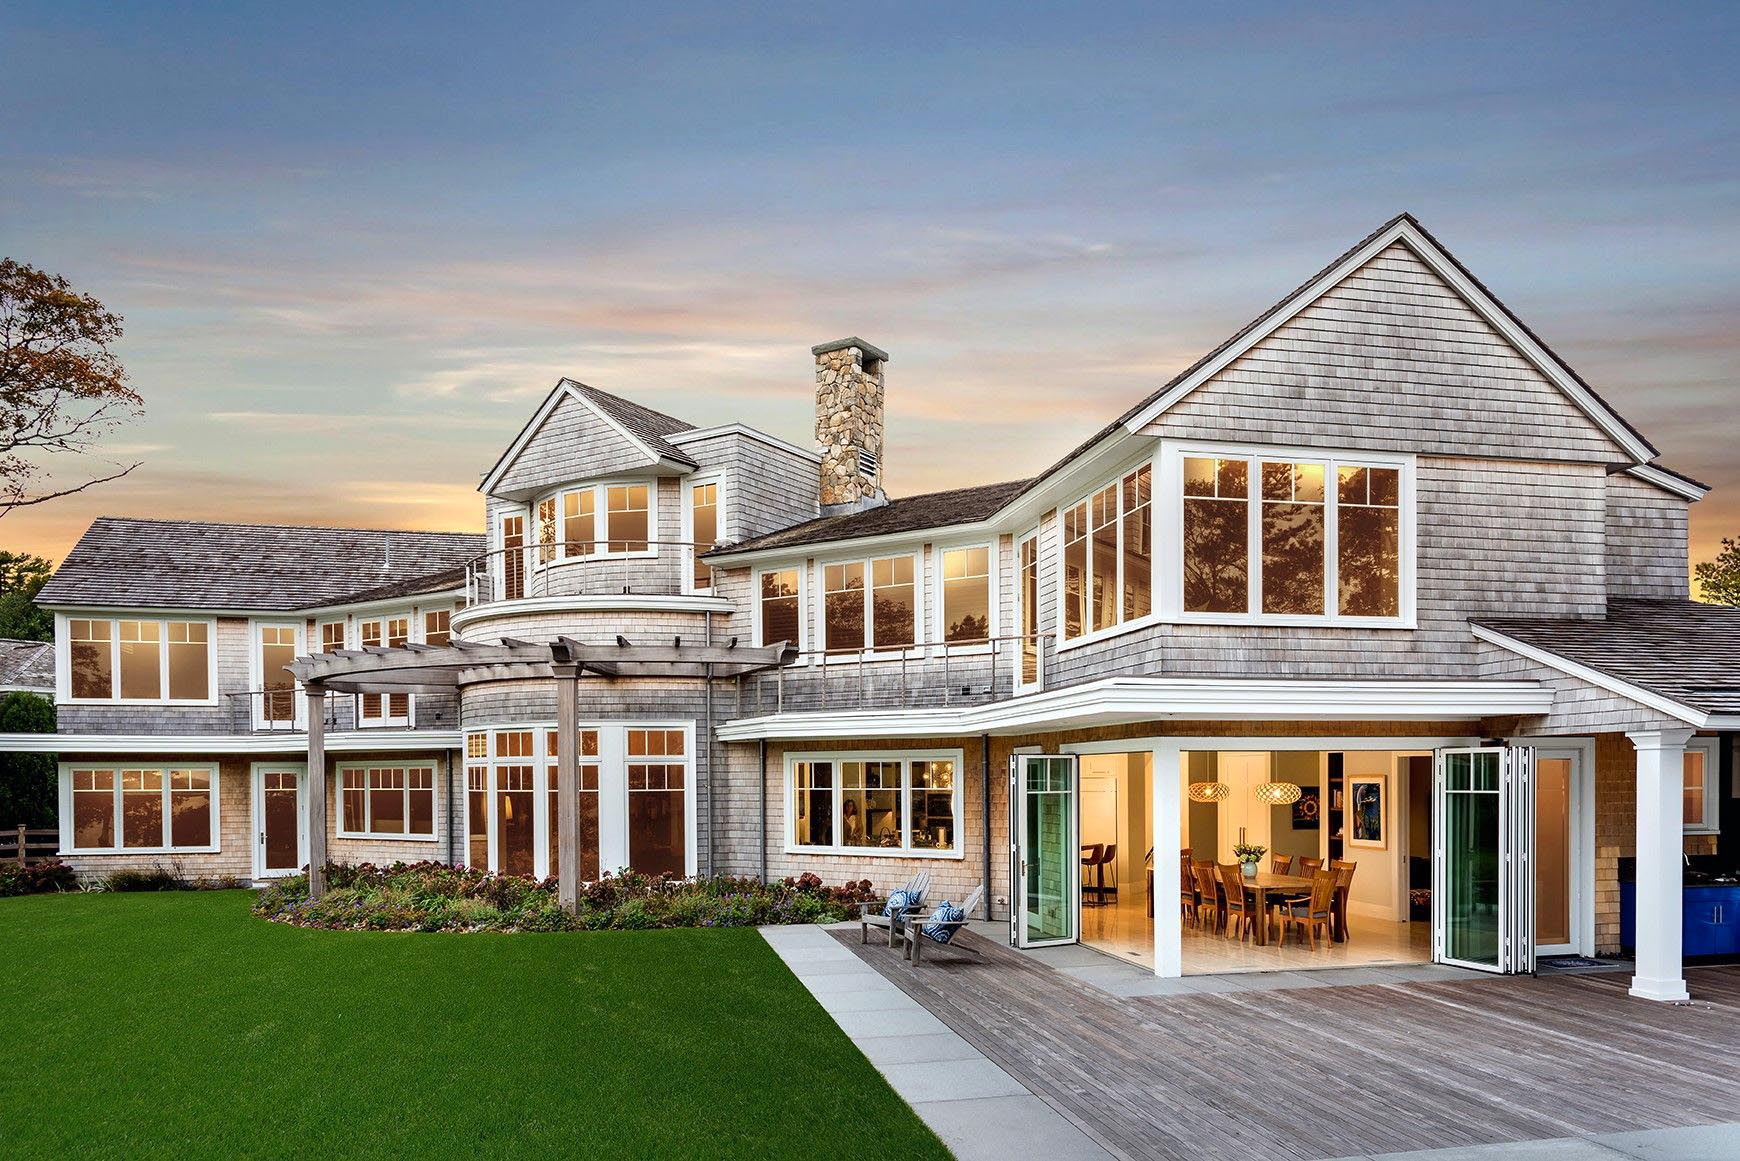 folding glass walls in traditional homes creates indoor/outdoor experience